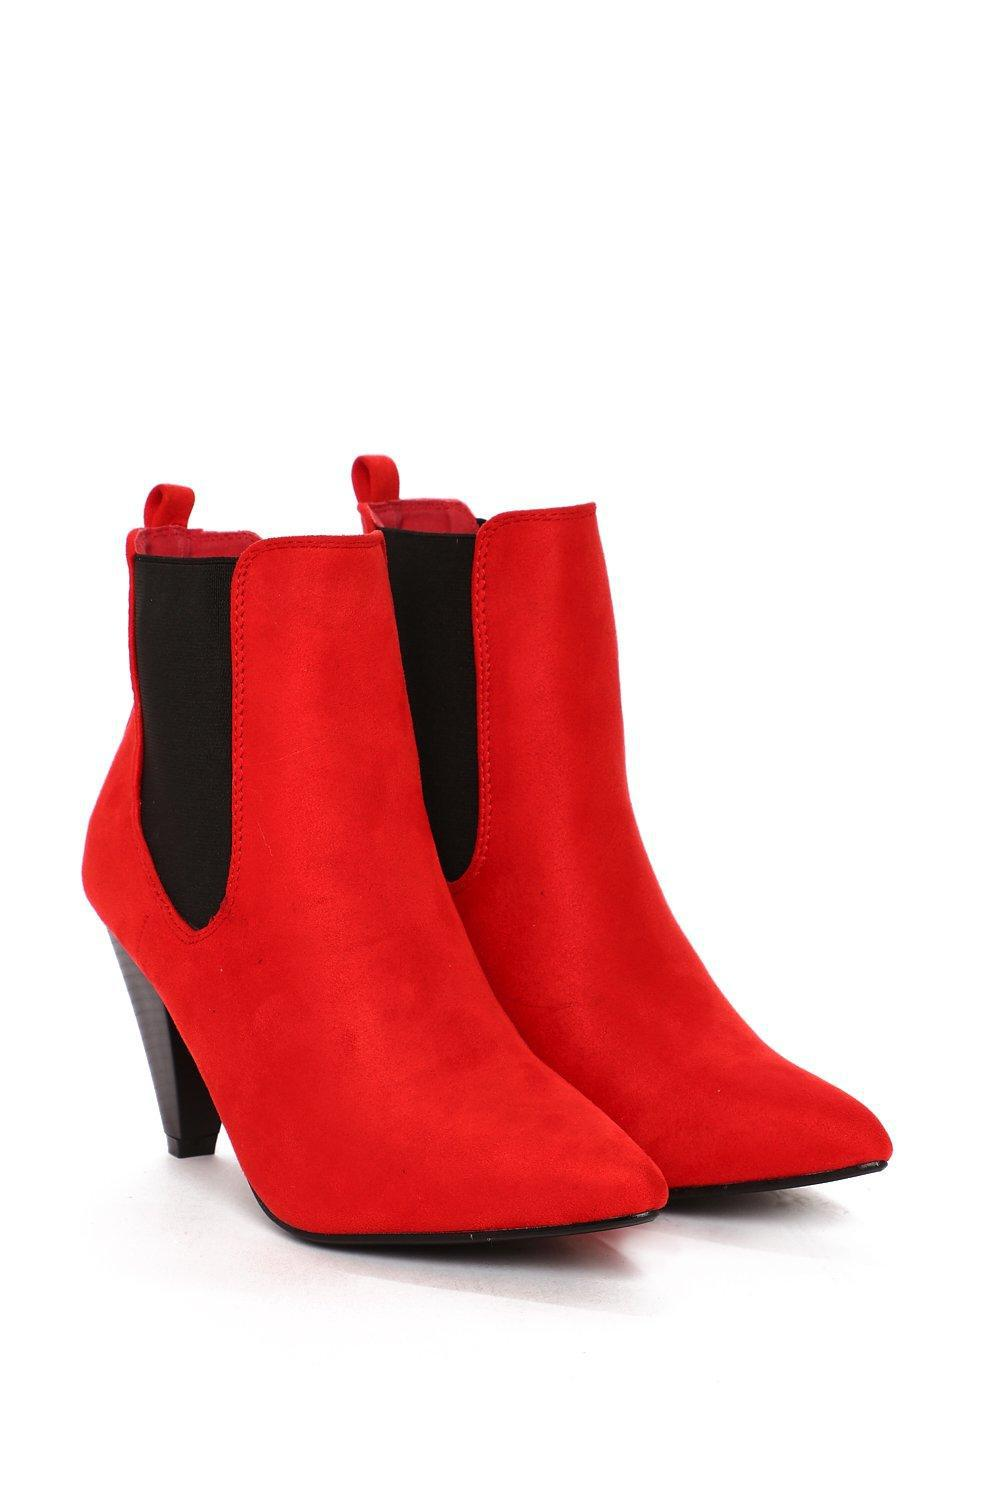 Nasty Gal Cone With The Wind Chelsea Boot in Red